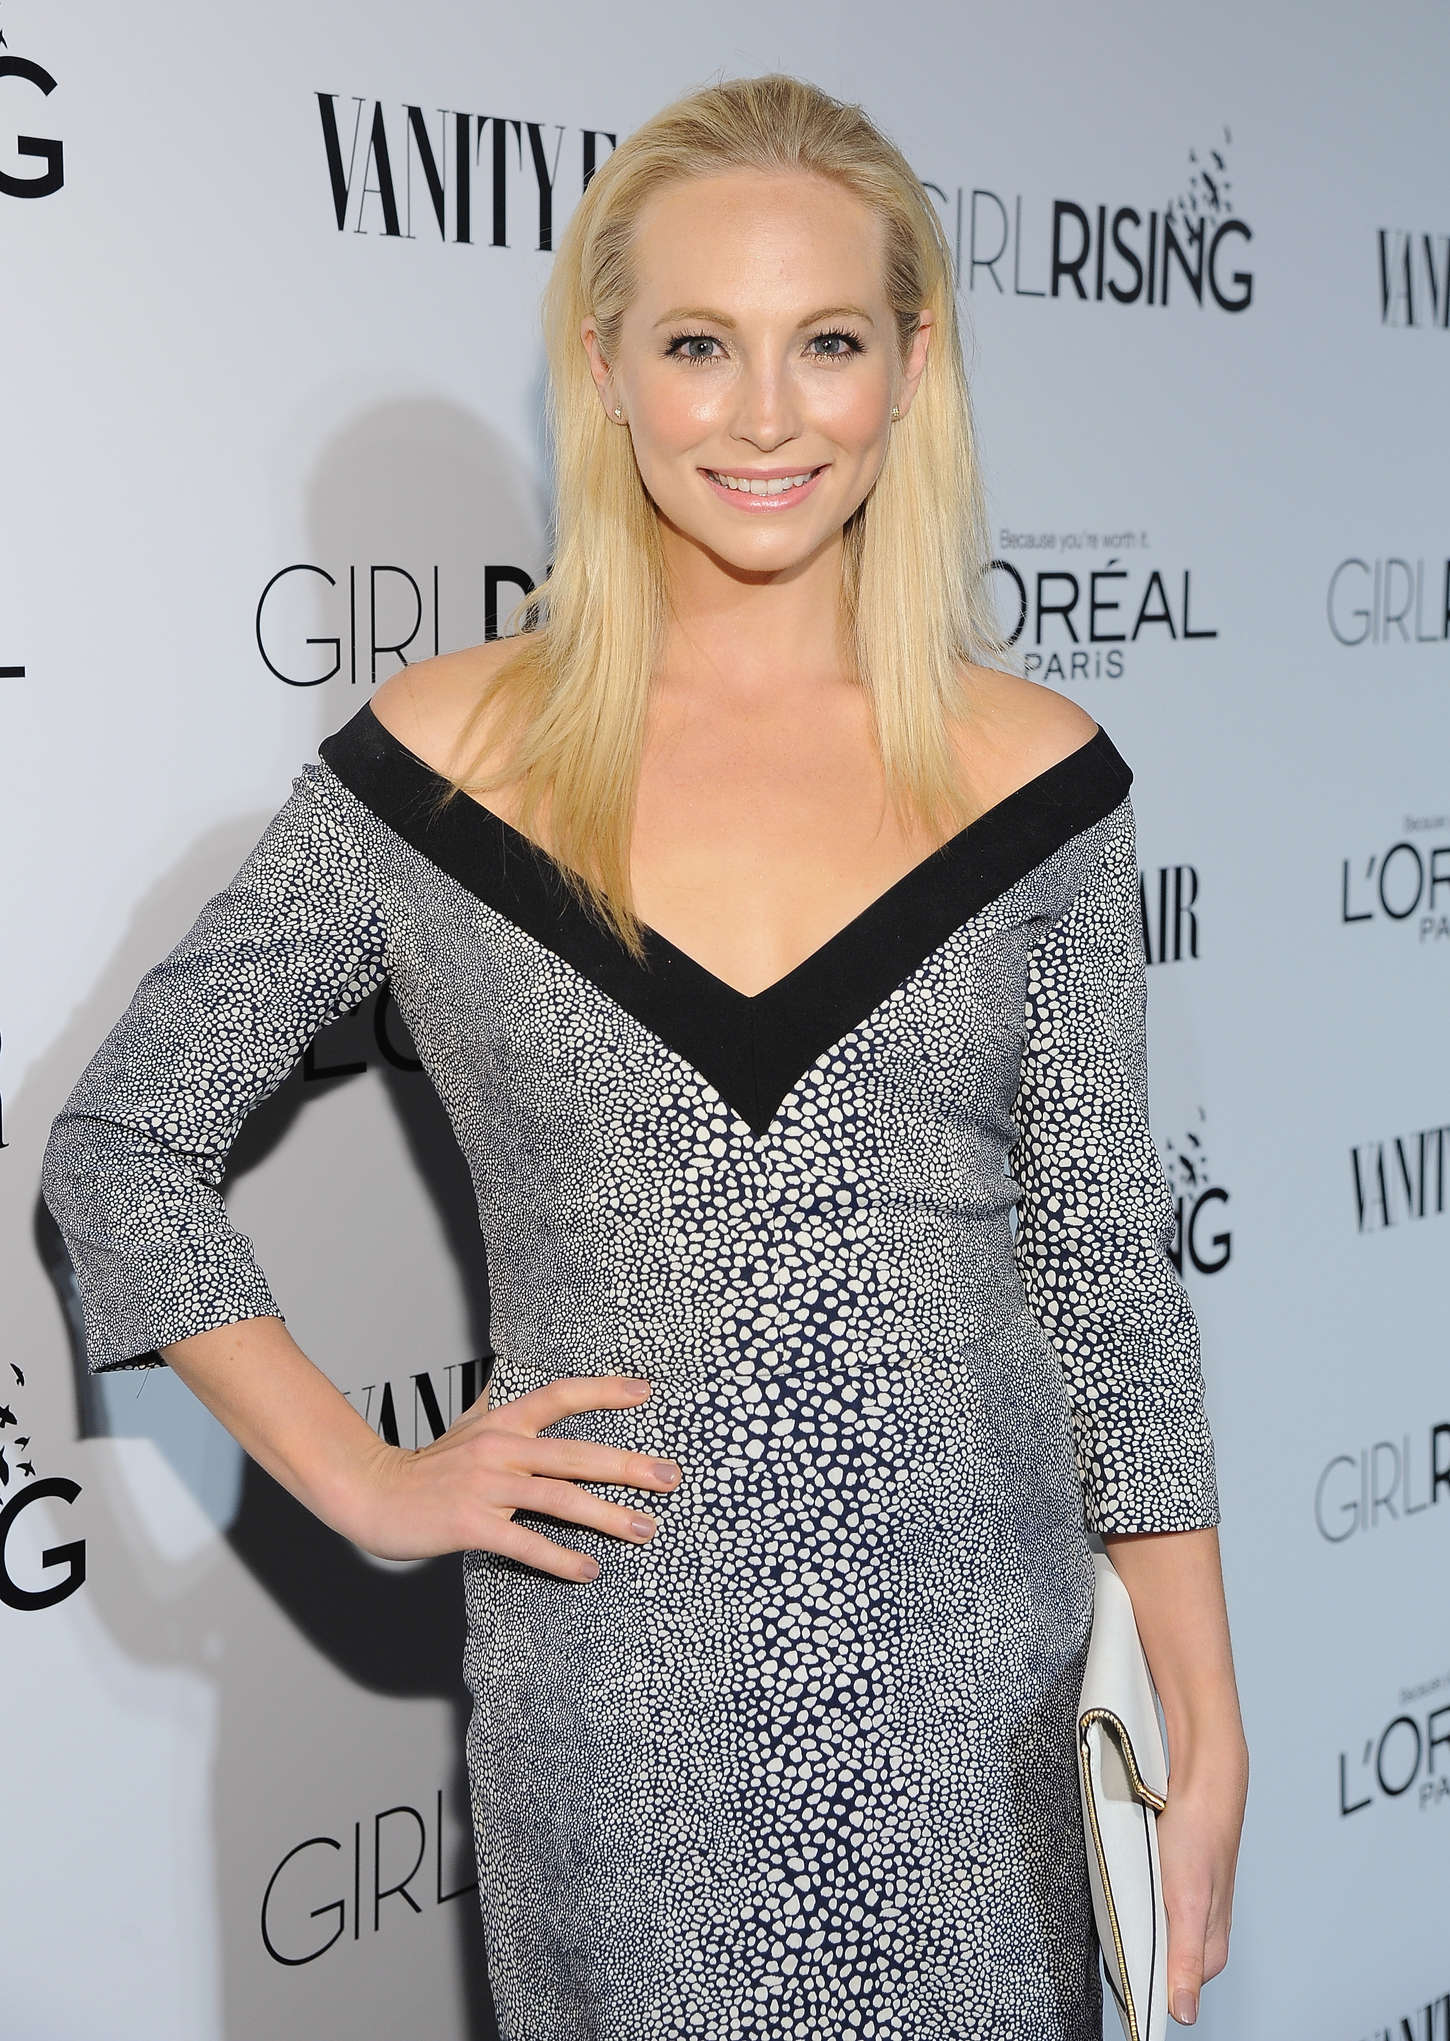 Candice Accola VANITY FAIR and LOreal Paris D.J. Night Benefit in Los Angeles